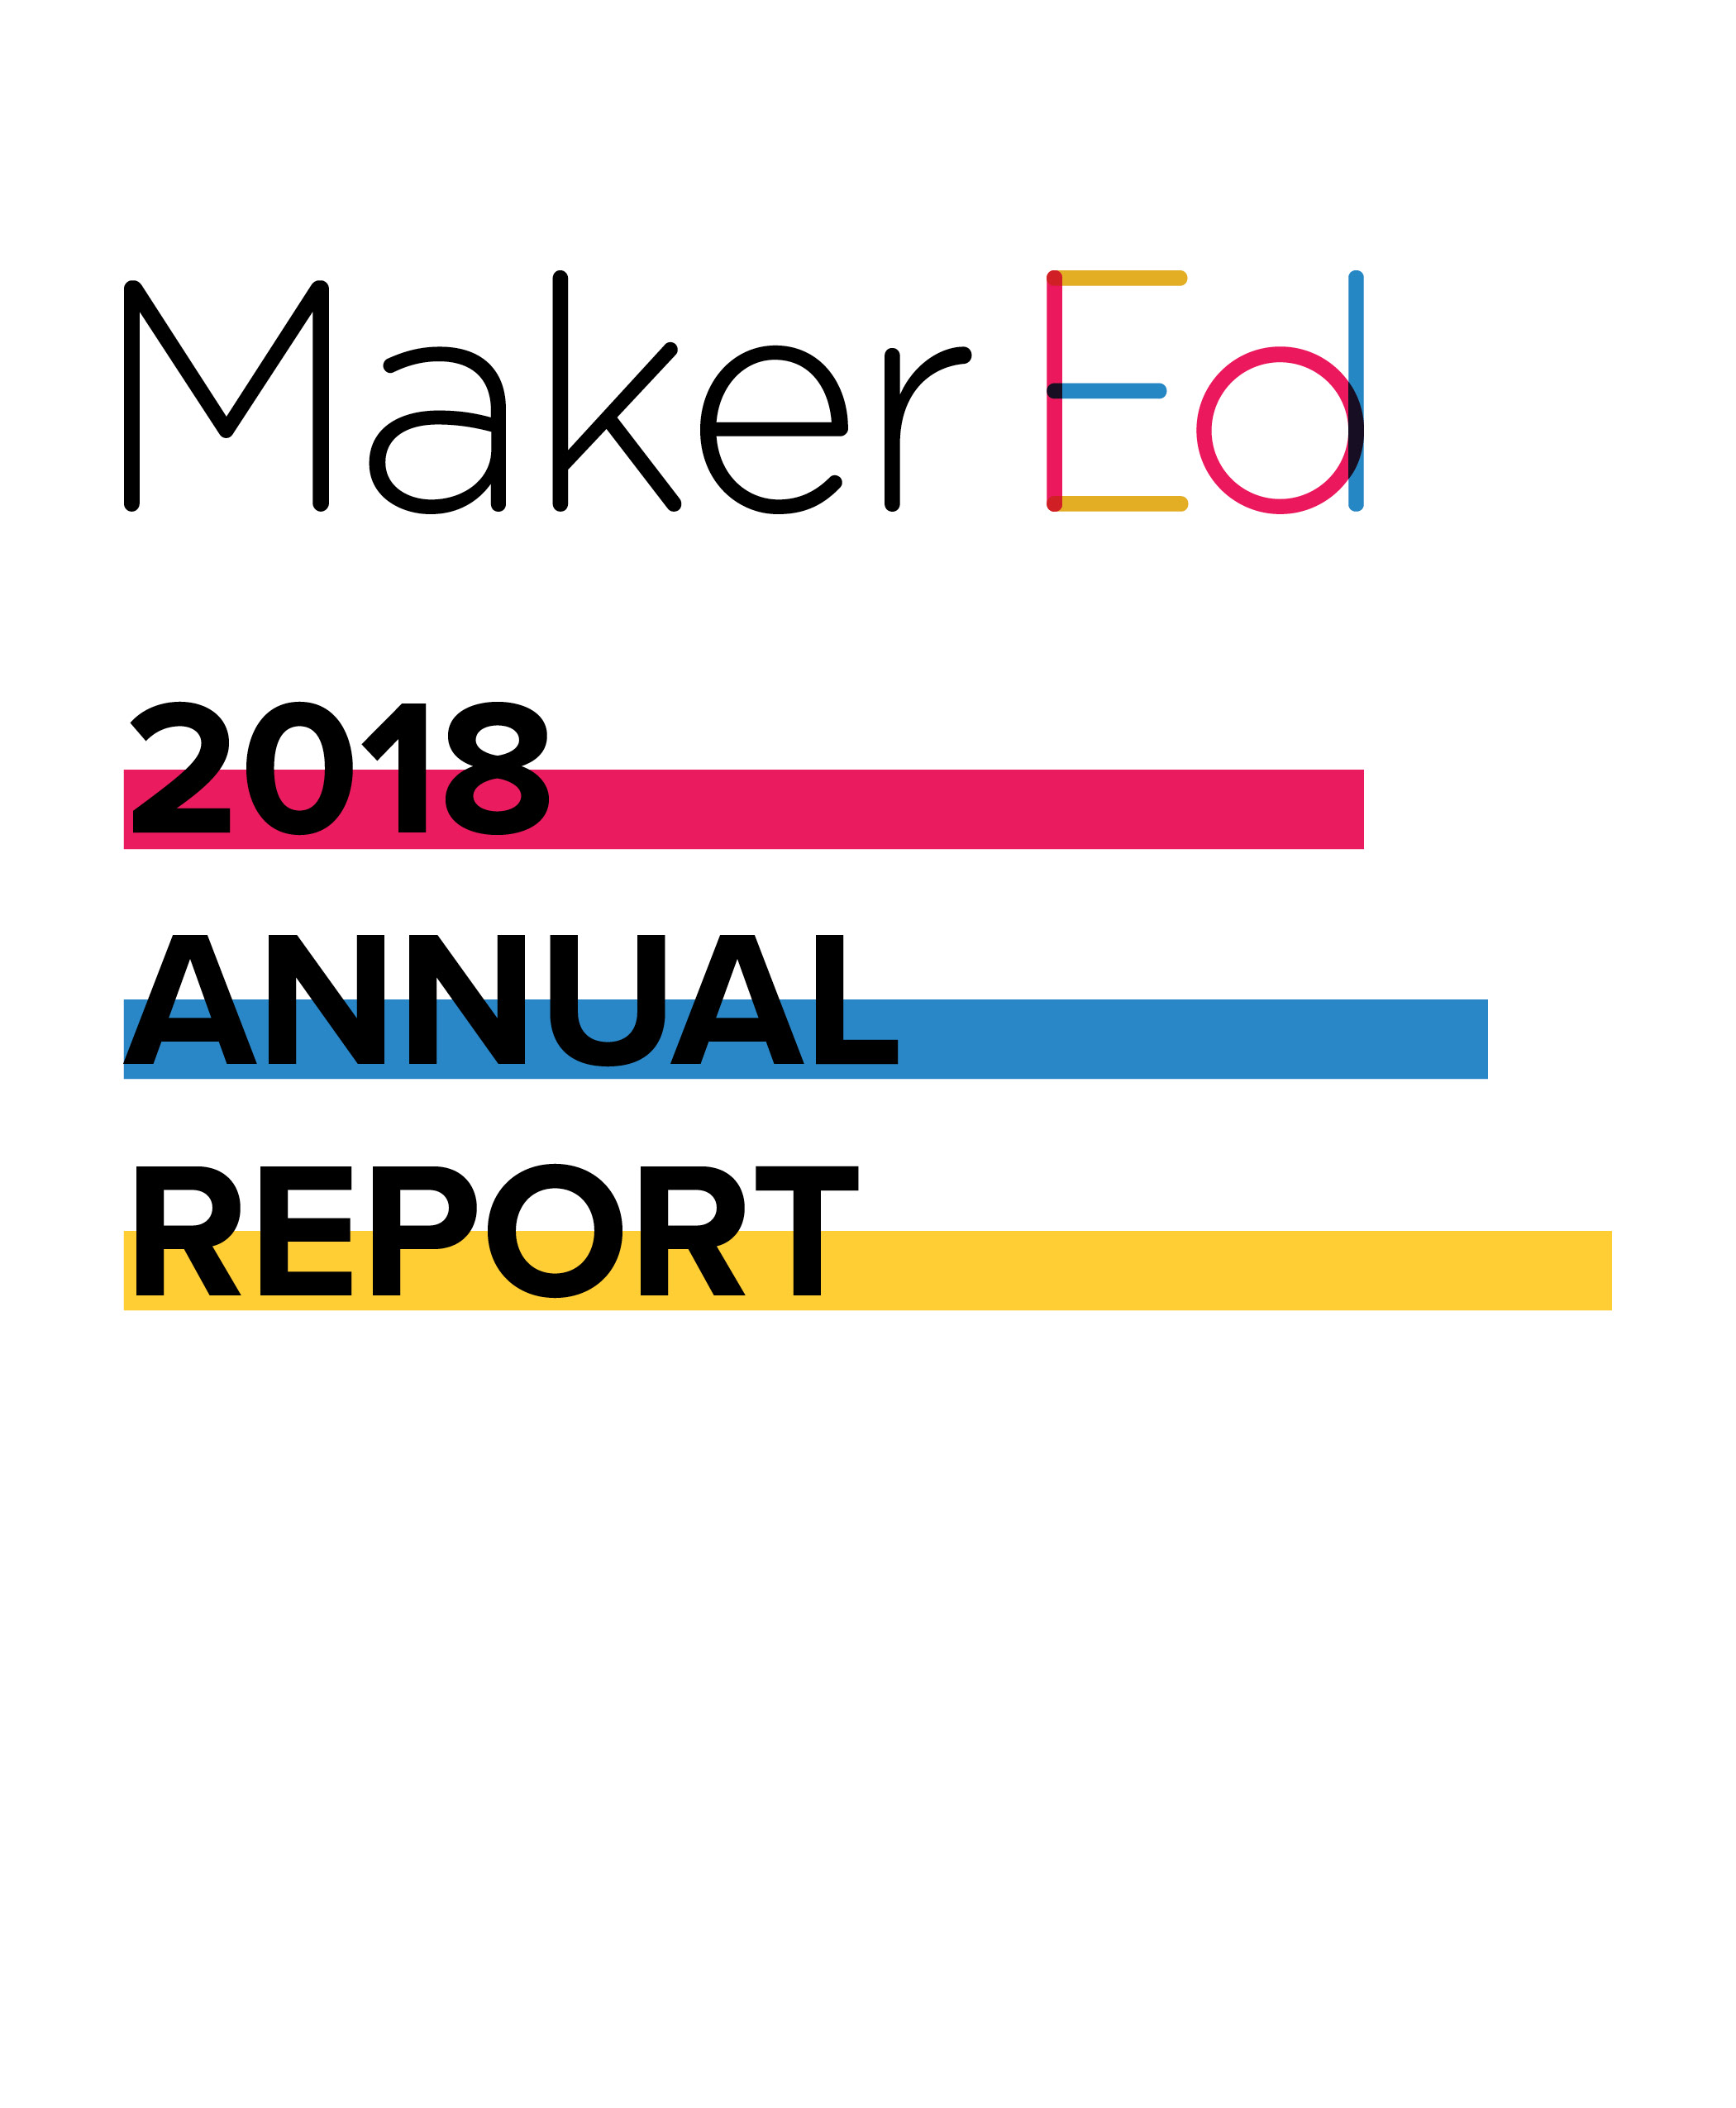 Maker Ed 2018 Annual Report